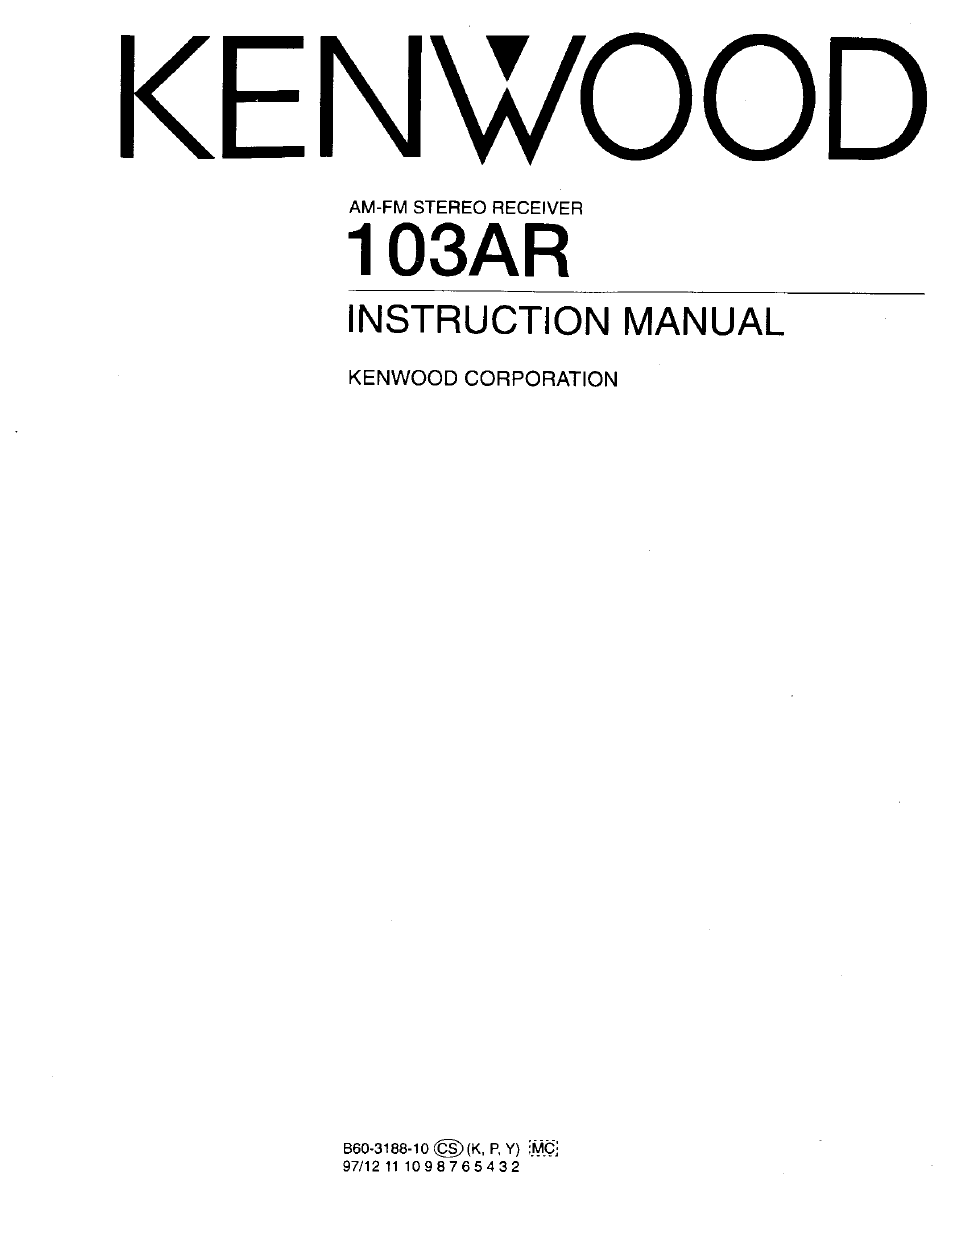 Instruction Manual Kenwood Stereo 1996 Oldsmobile Achieva 24 Pin Connector Fuse Box Diagram Array 376 User U0027s Free Pdf Download 19 Pages Rh Manualagent Com